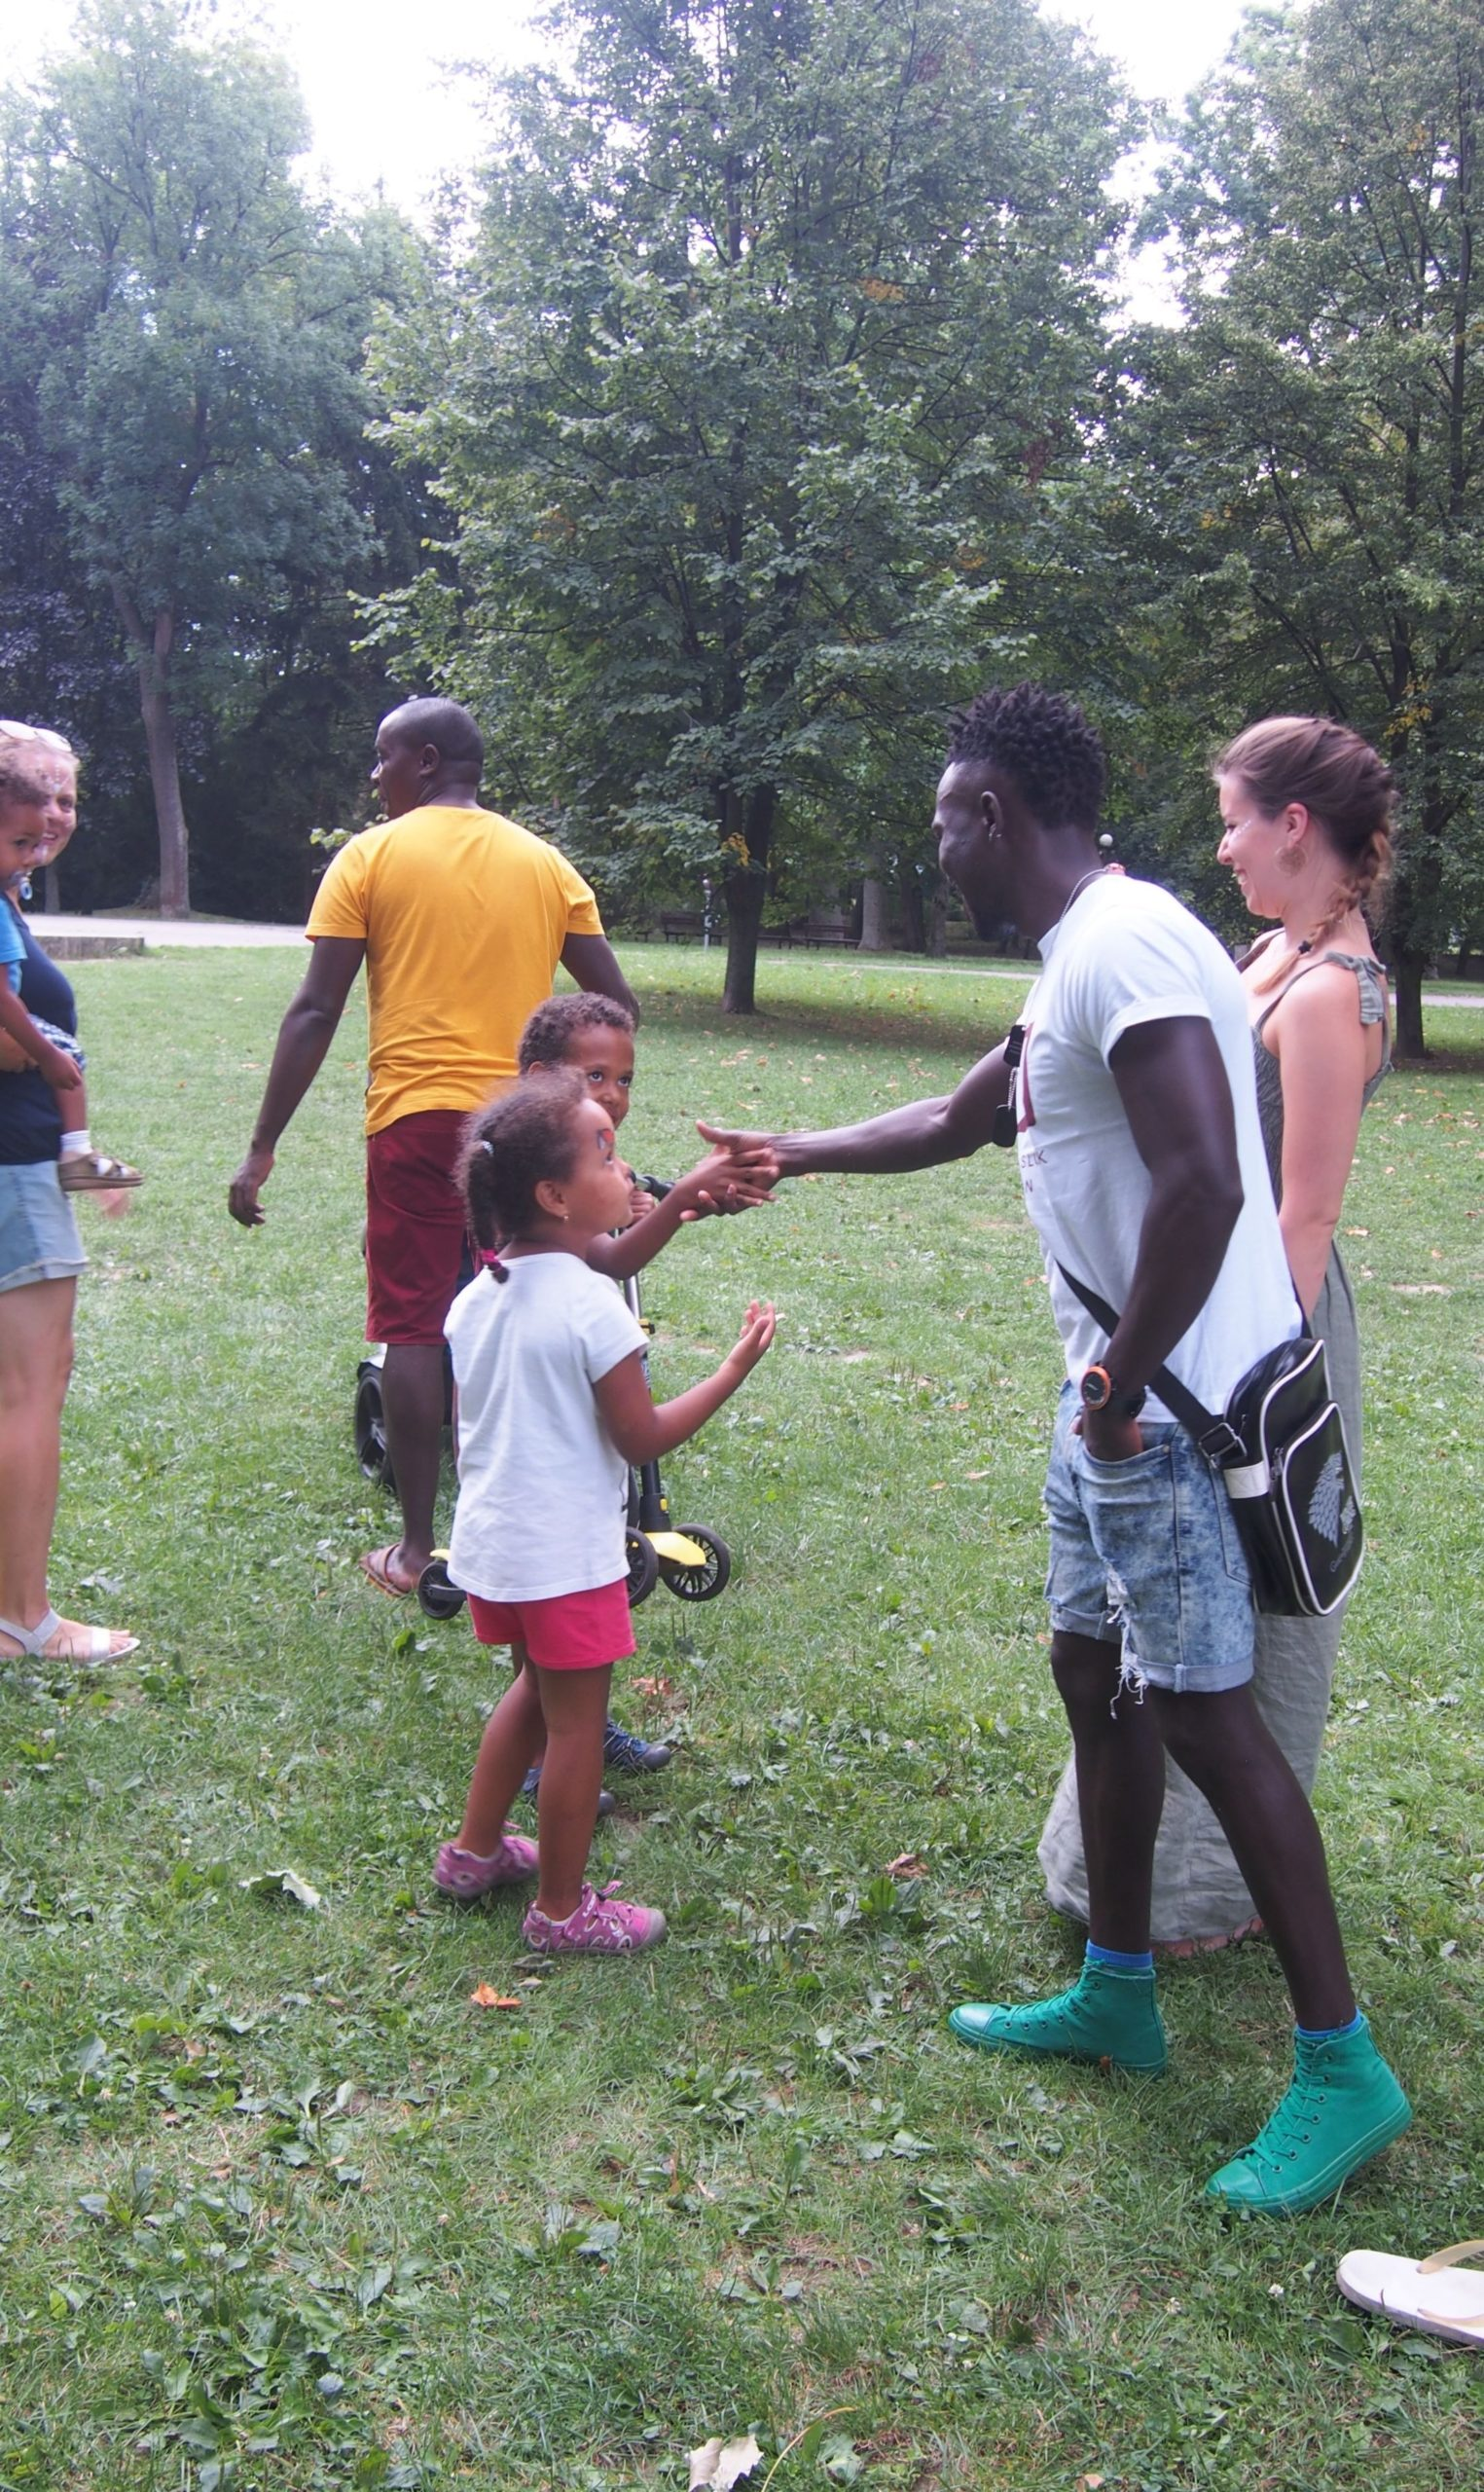 ASU team members playing with mixed kids at the safari picnic